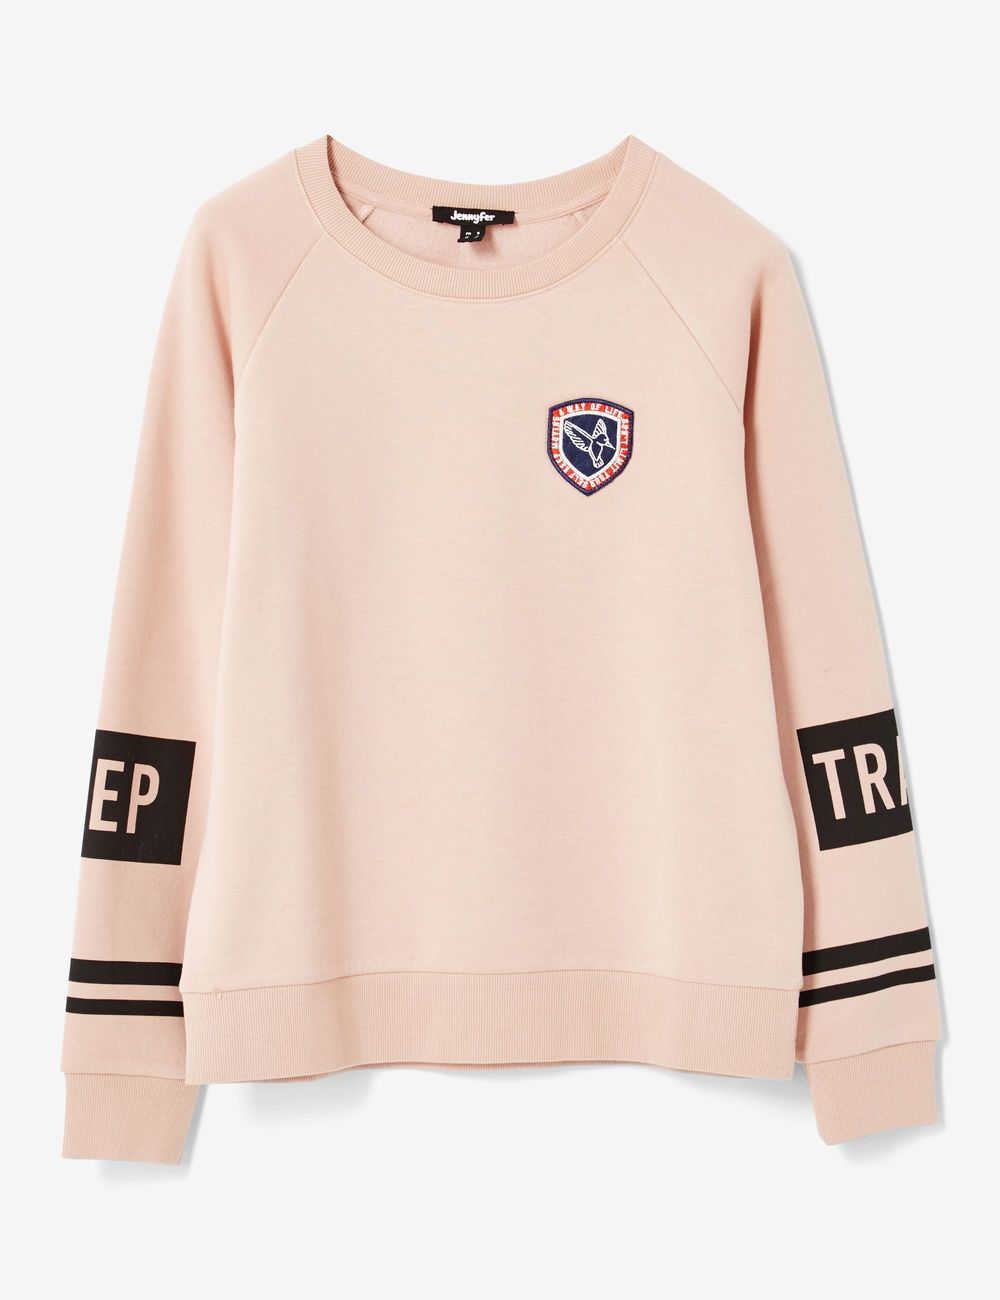 319ce00f96ee7 Sweat keep track rose clair femme • Jennyfer | man fash | Jennyfer ...